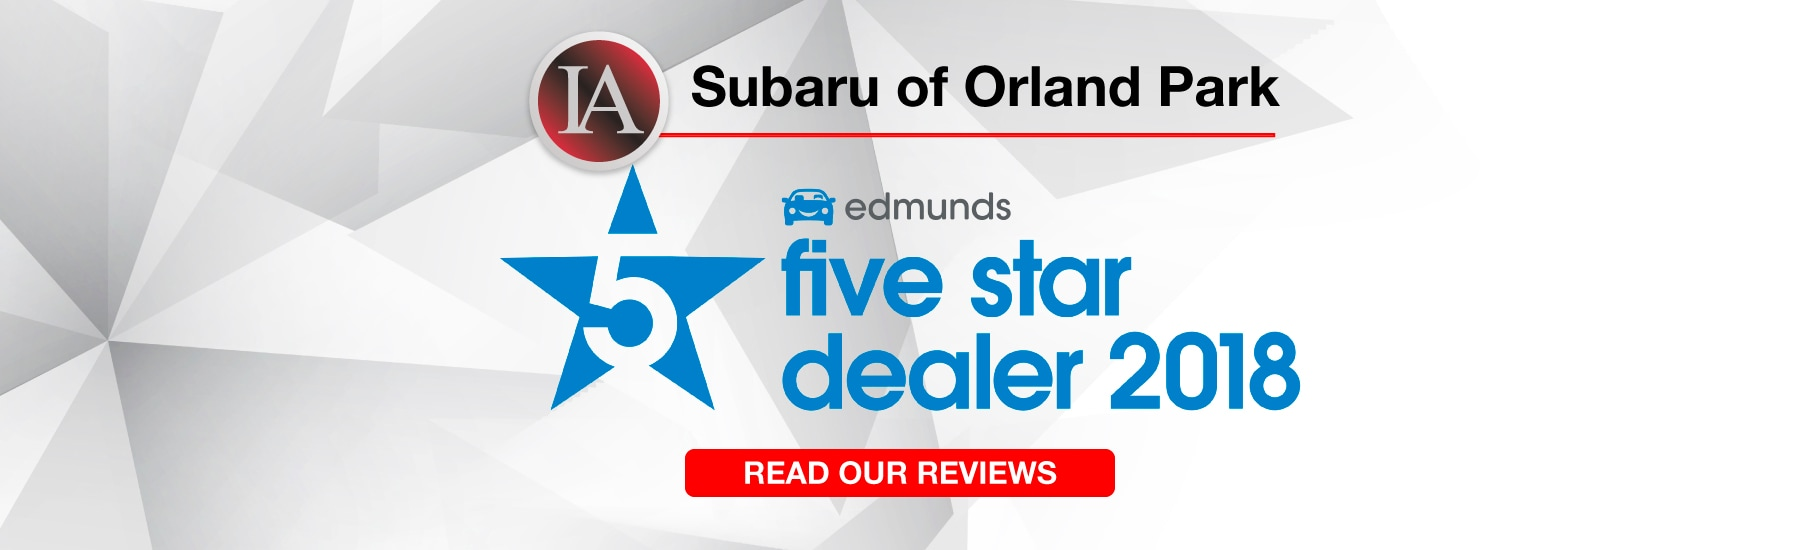 international subaru orland park subaru dealer in tinley park il